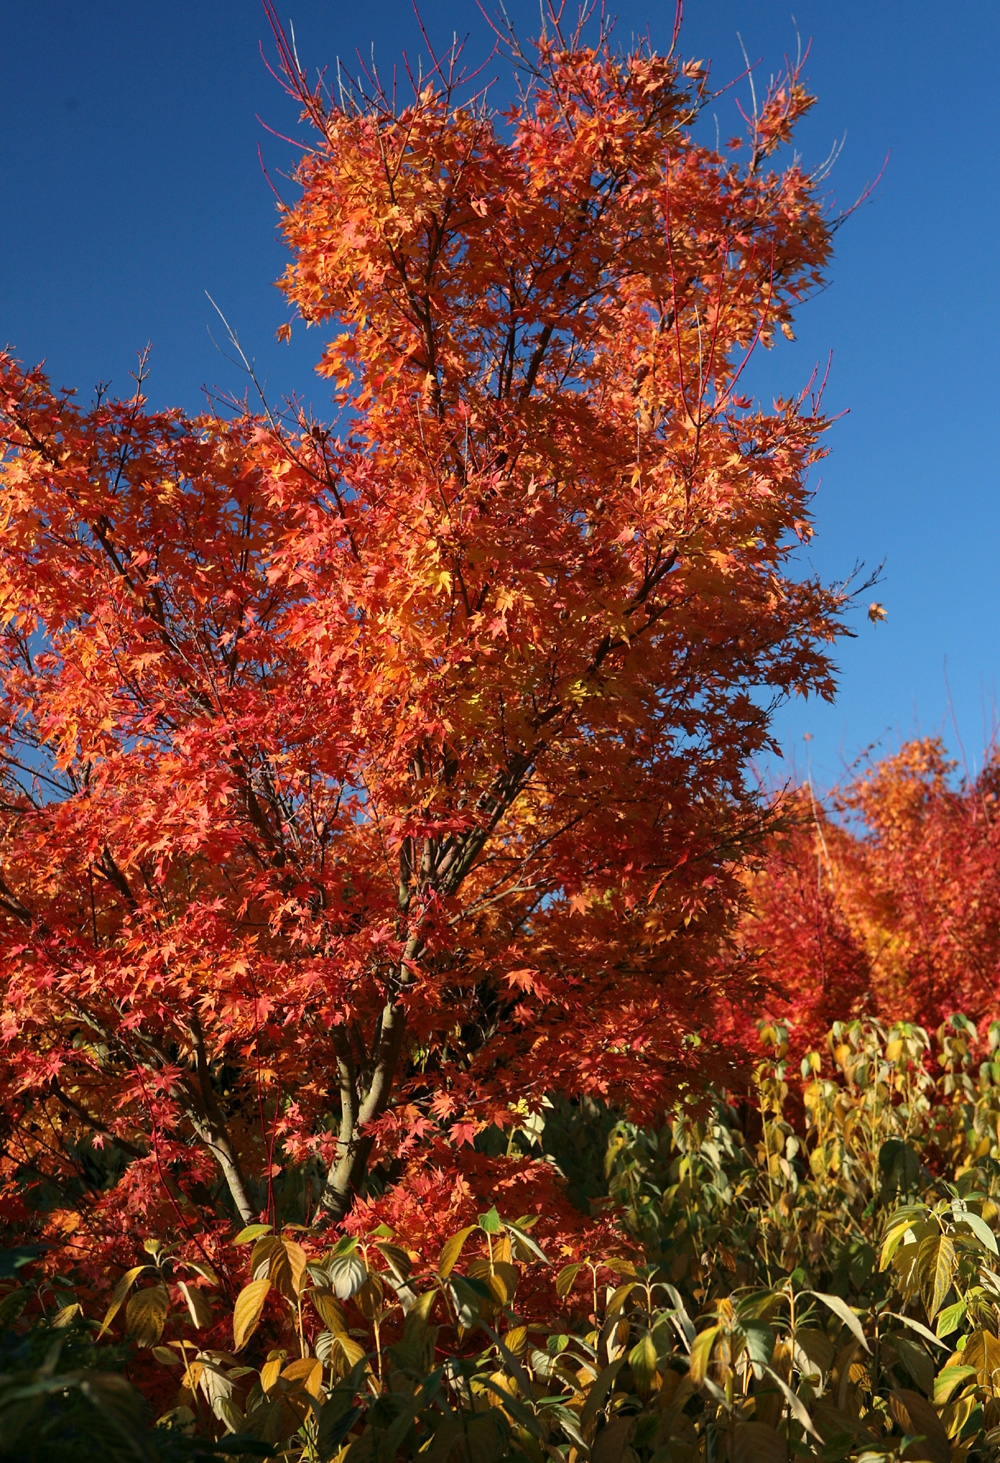 Acer palmatum Osakazuki multi-stem in autumn foliage